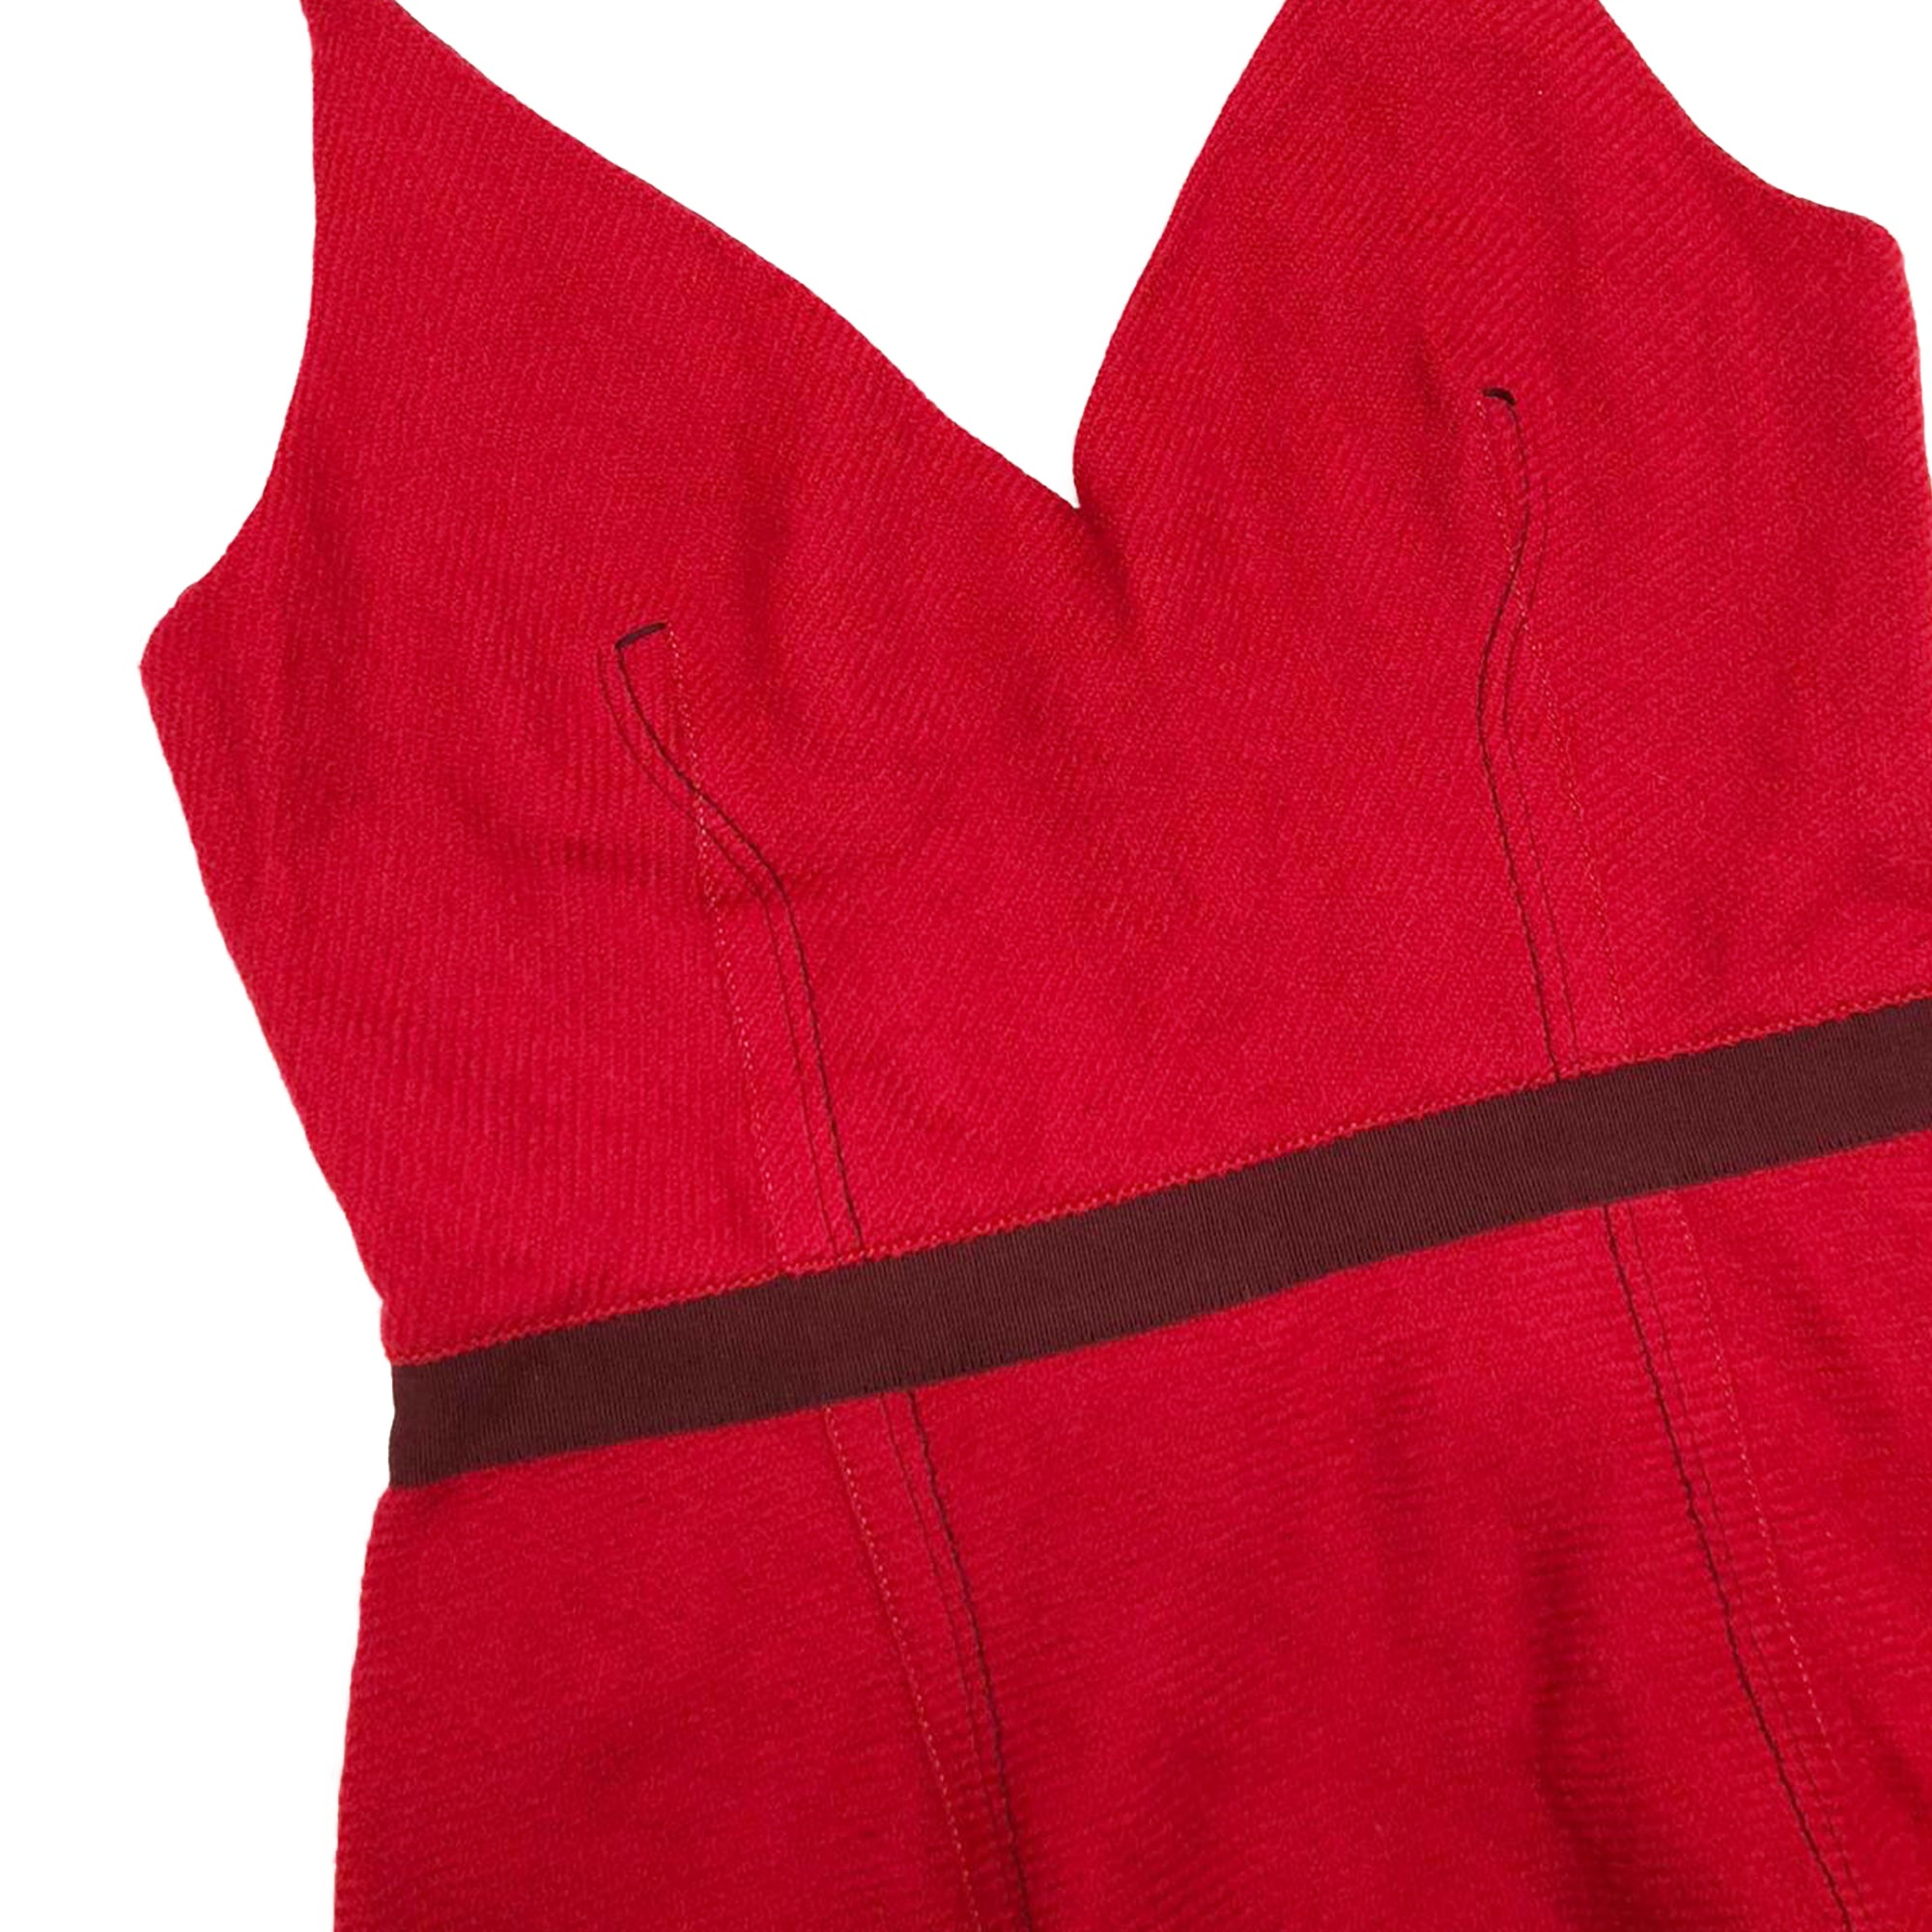 Prada Top (Red) UK 8-10